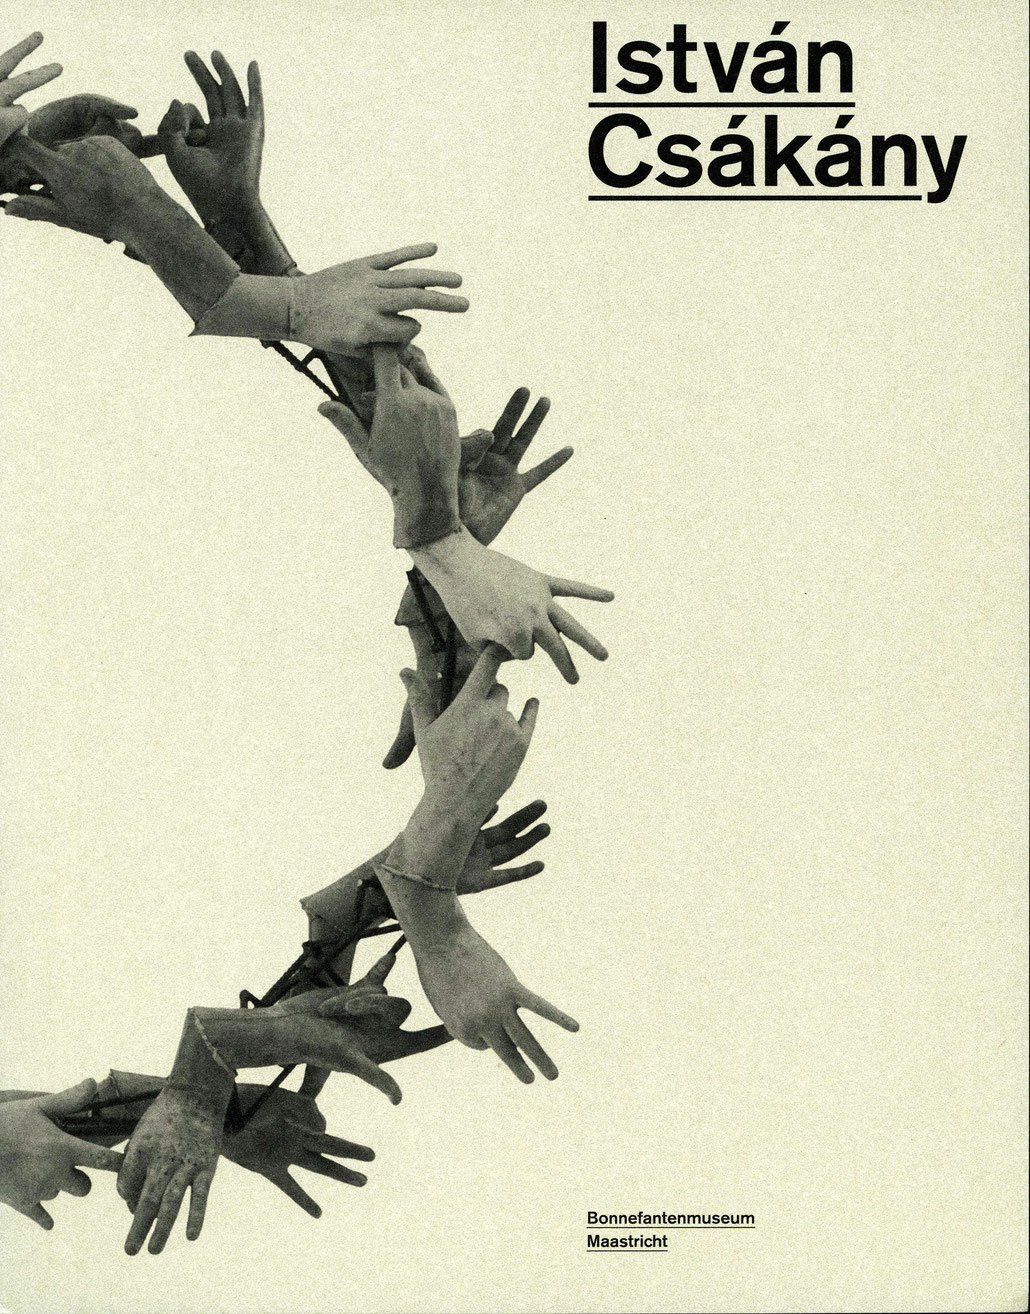 Istvan Csakany Buch Book about the Hungarian Contemporary Artist